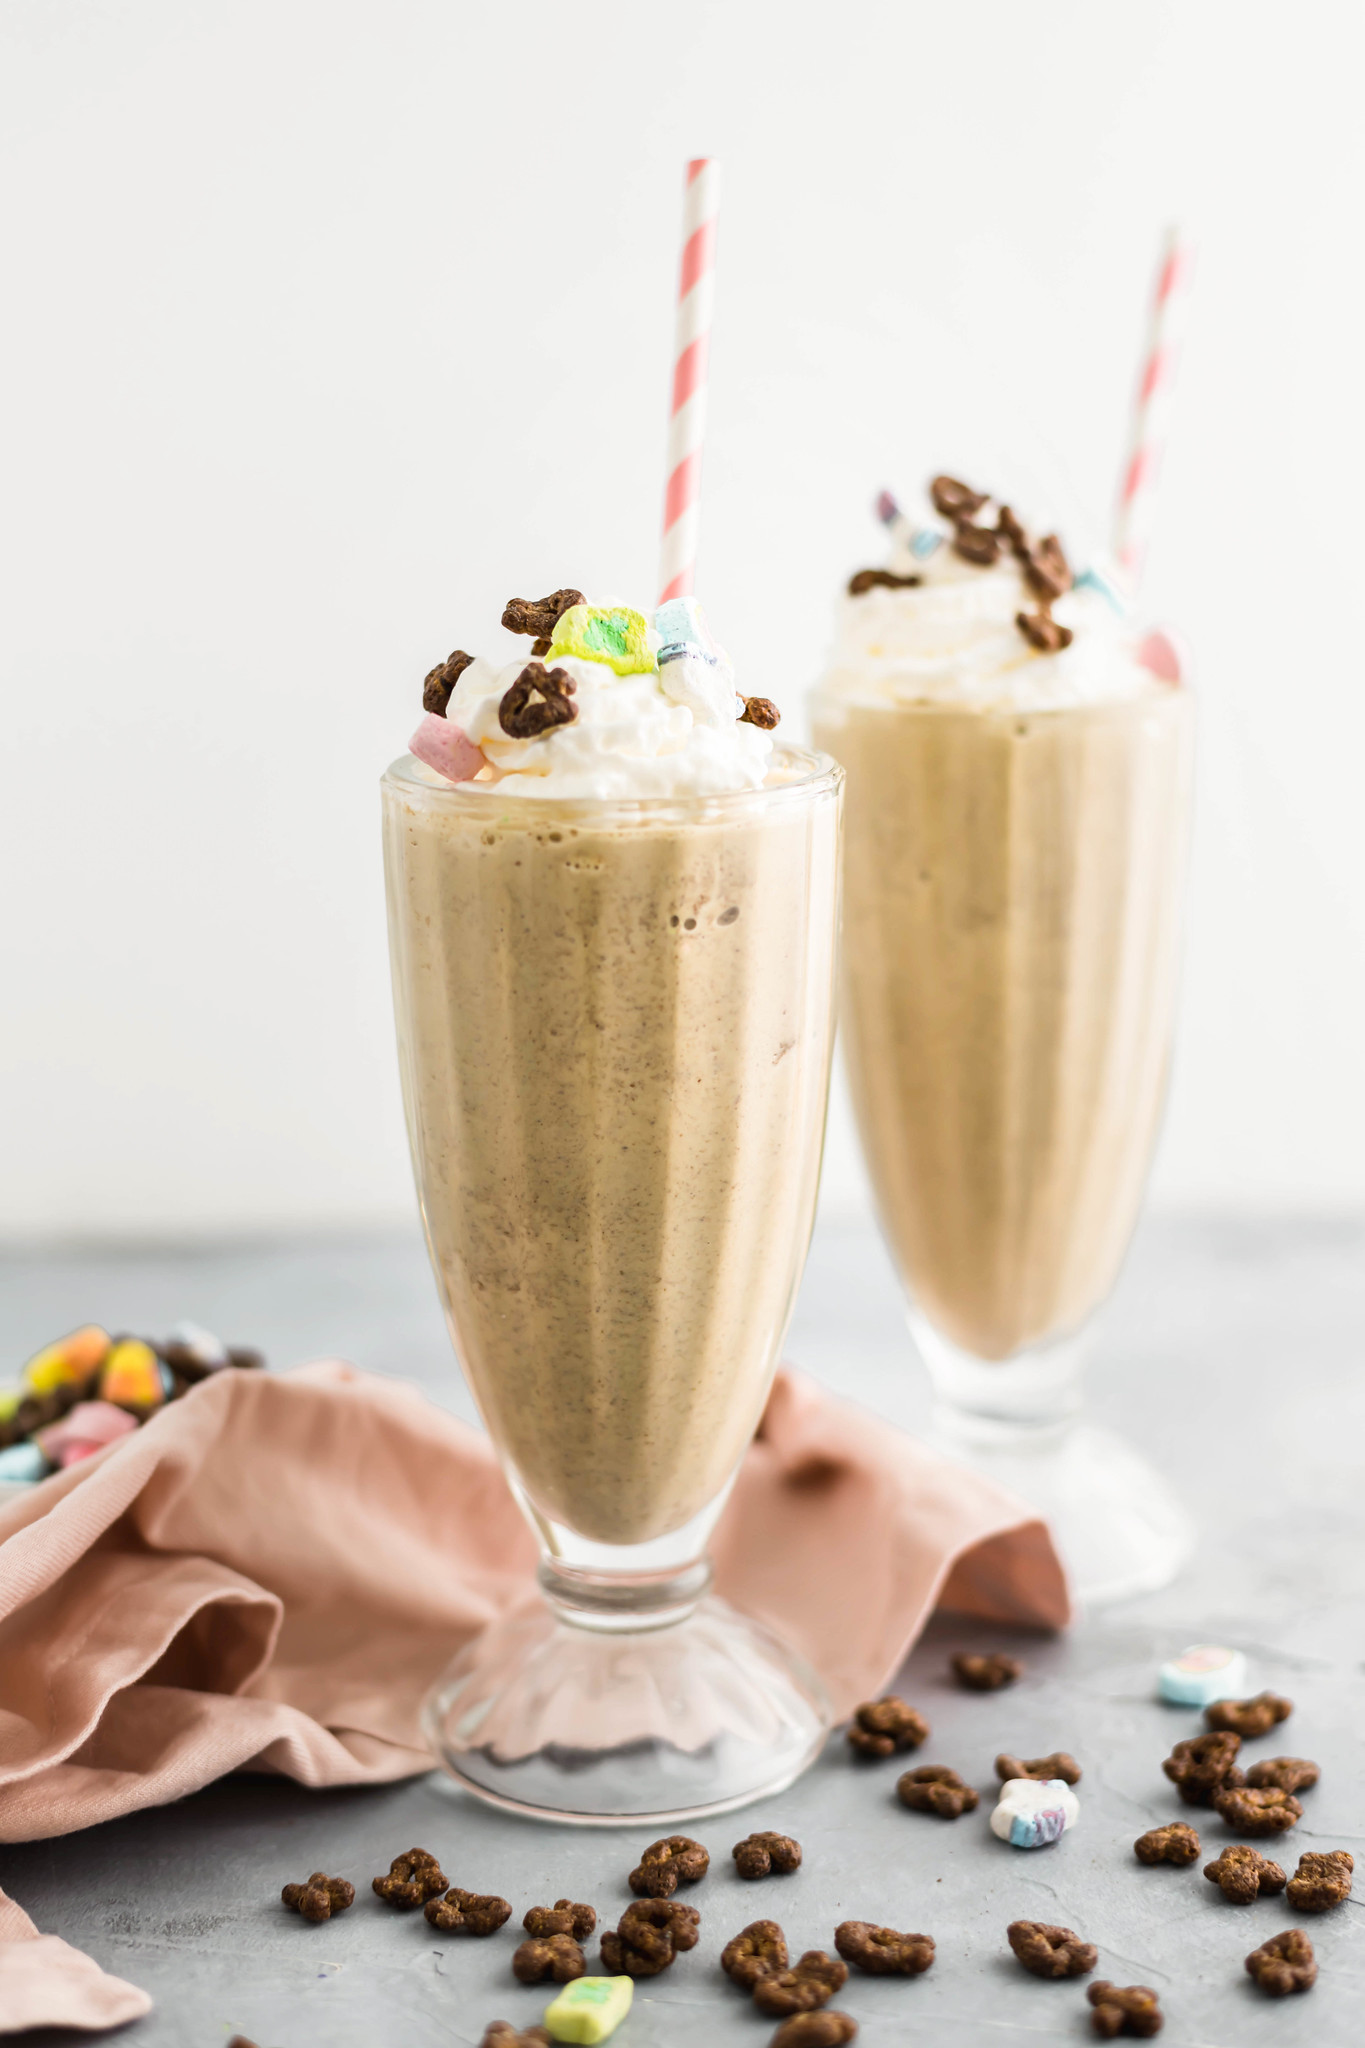 St. Patrick's Day is right around the corner and what better way than to celebrate with a Chocolate Lucky Charms Milkshake. Grab some ice cream, cereal and milk and let's get started.